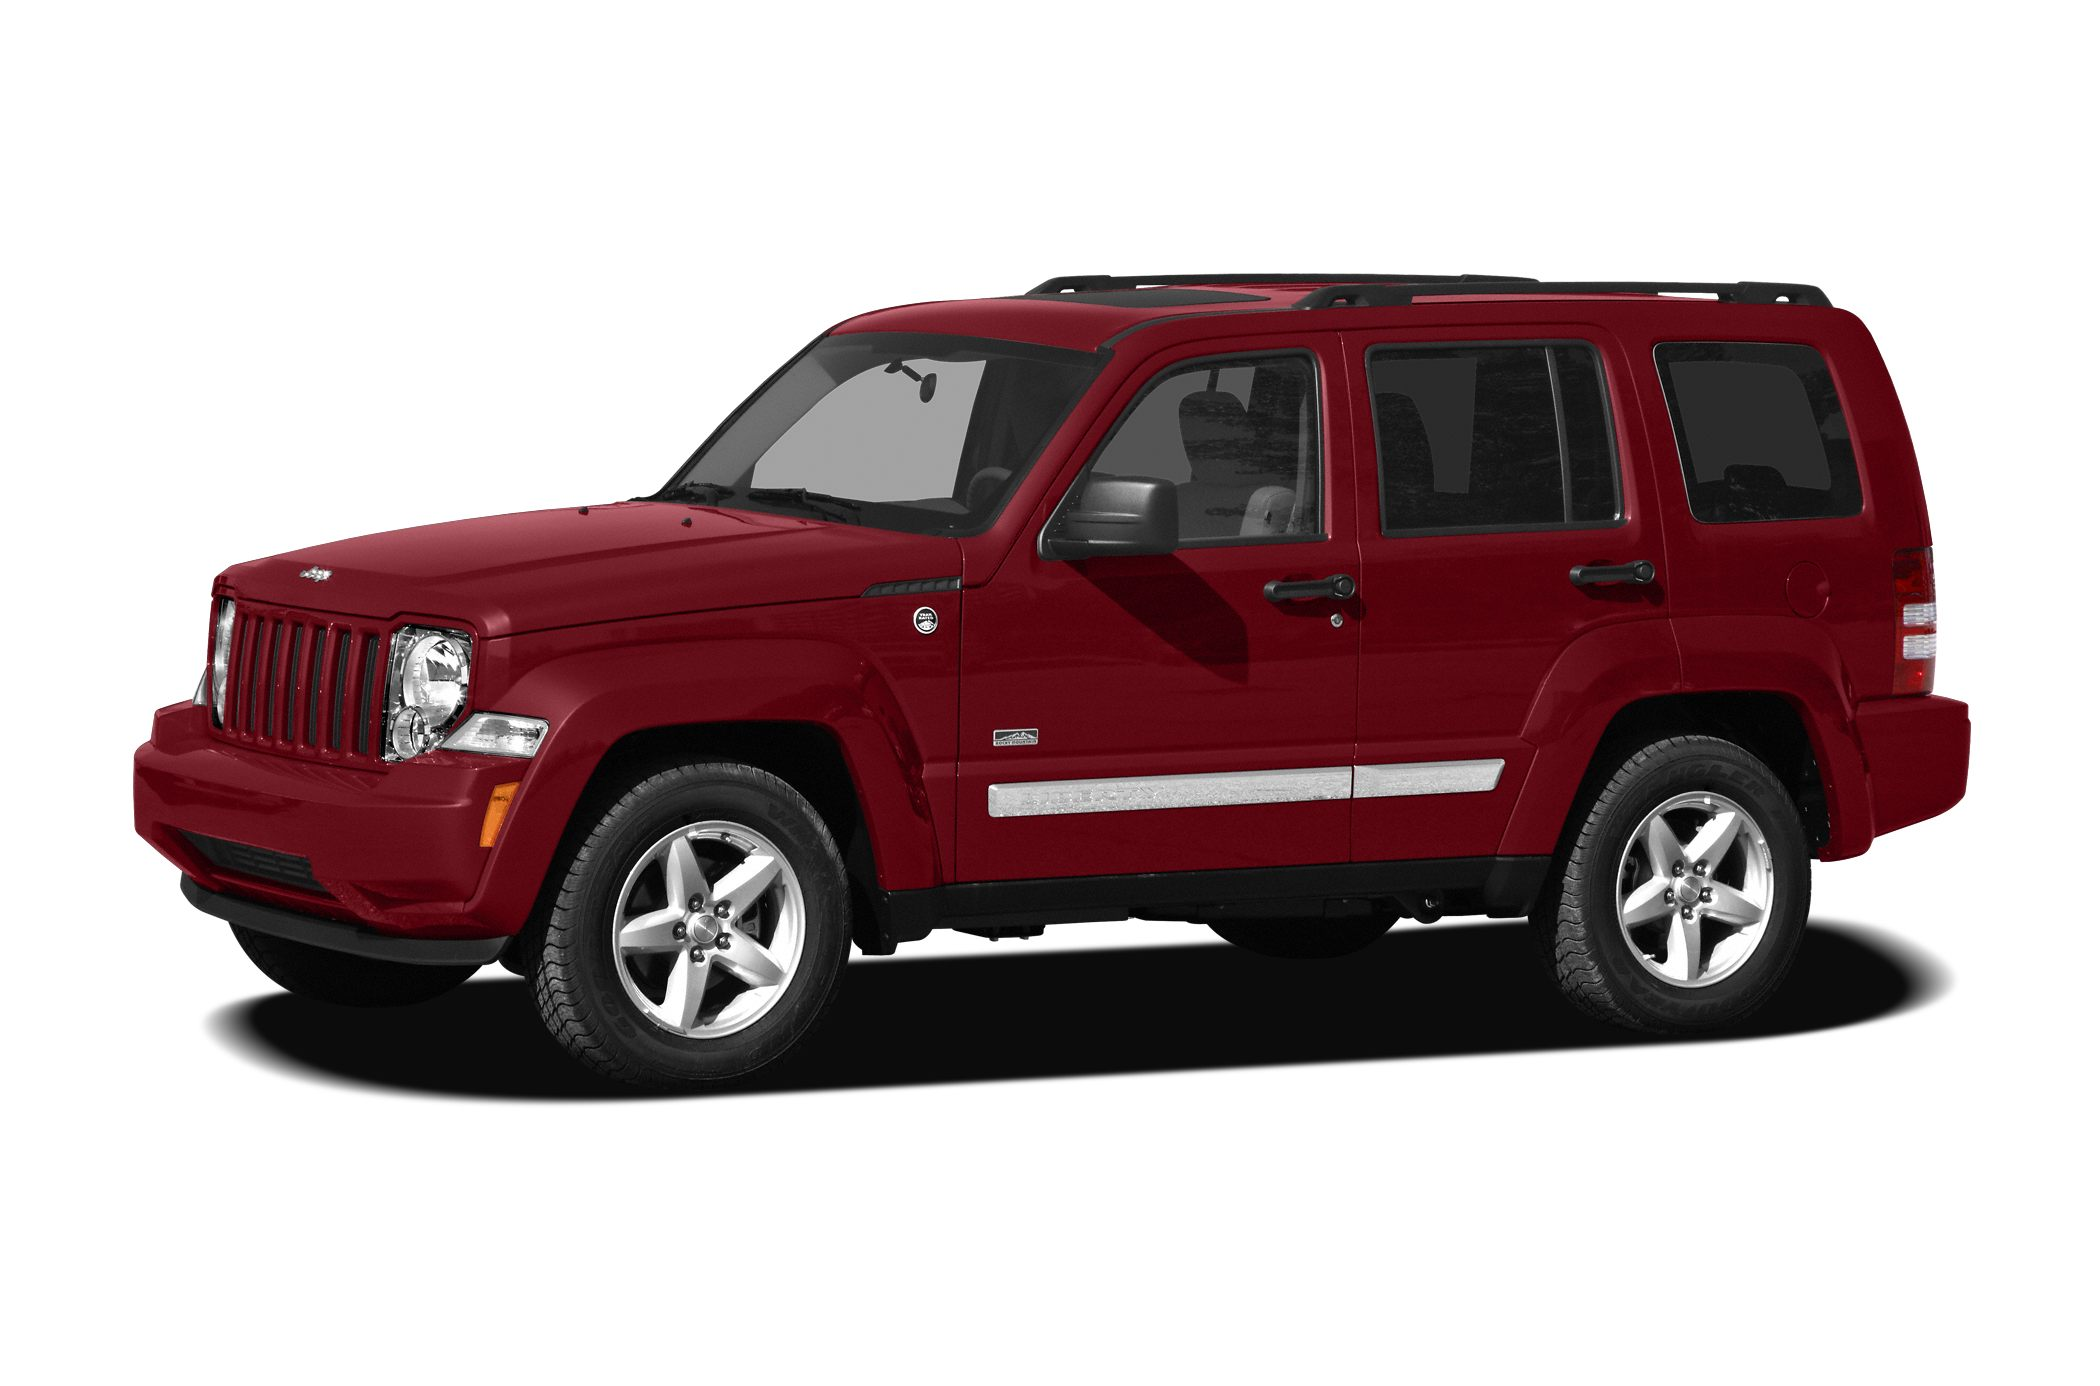 2010 Jeep Liberty Sport SUV for sale in Johnstown for $13,990 with 79,920 miles